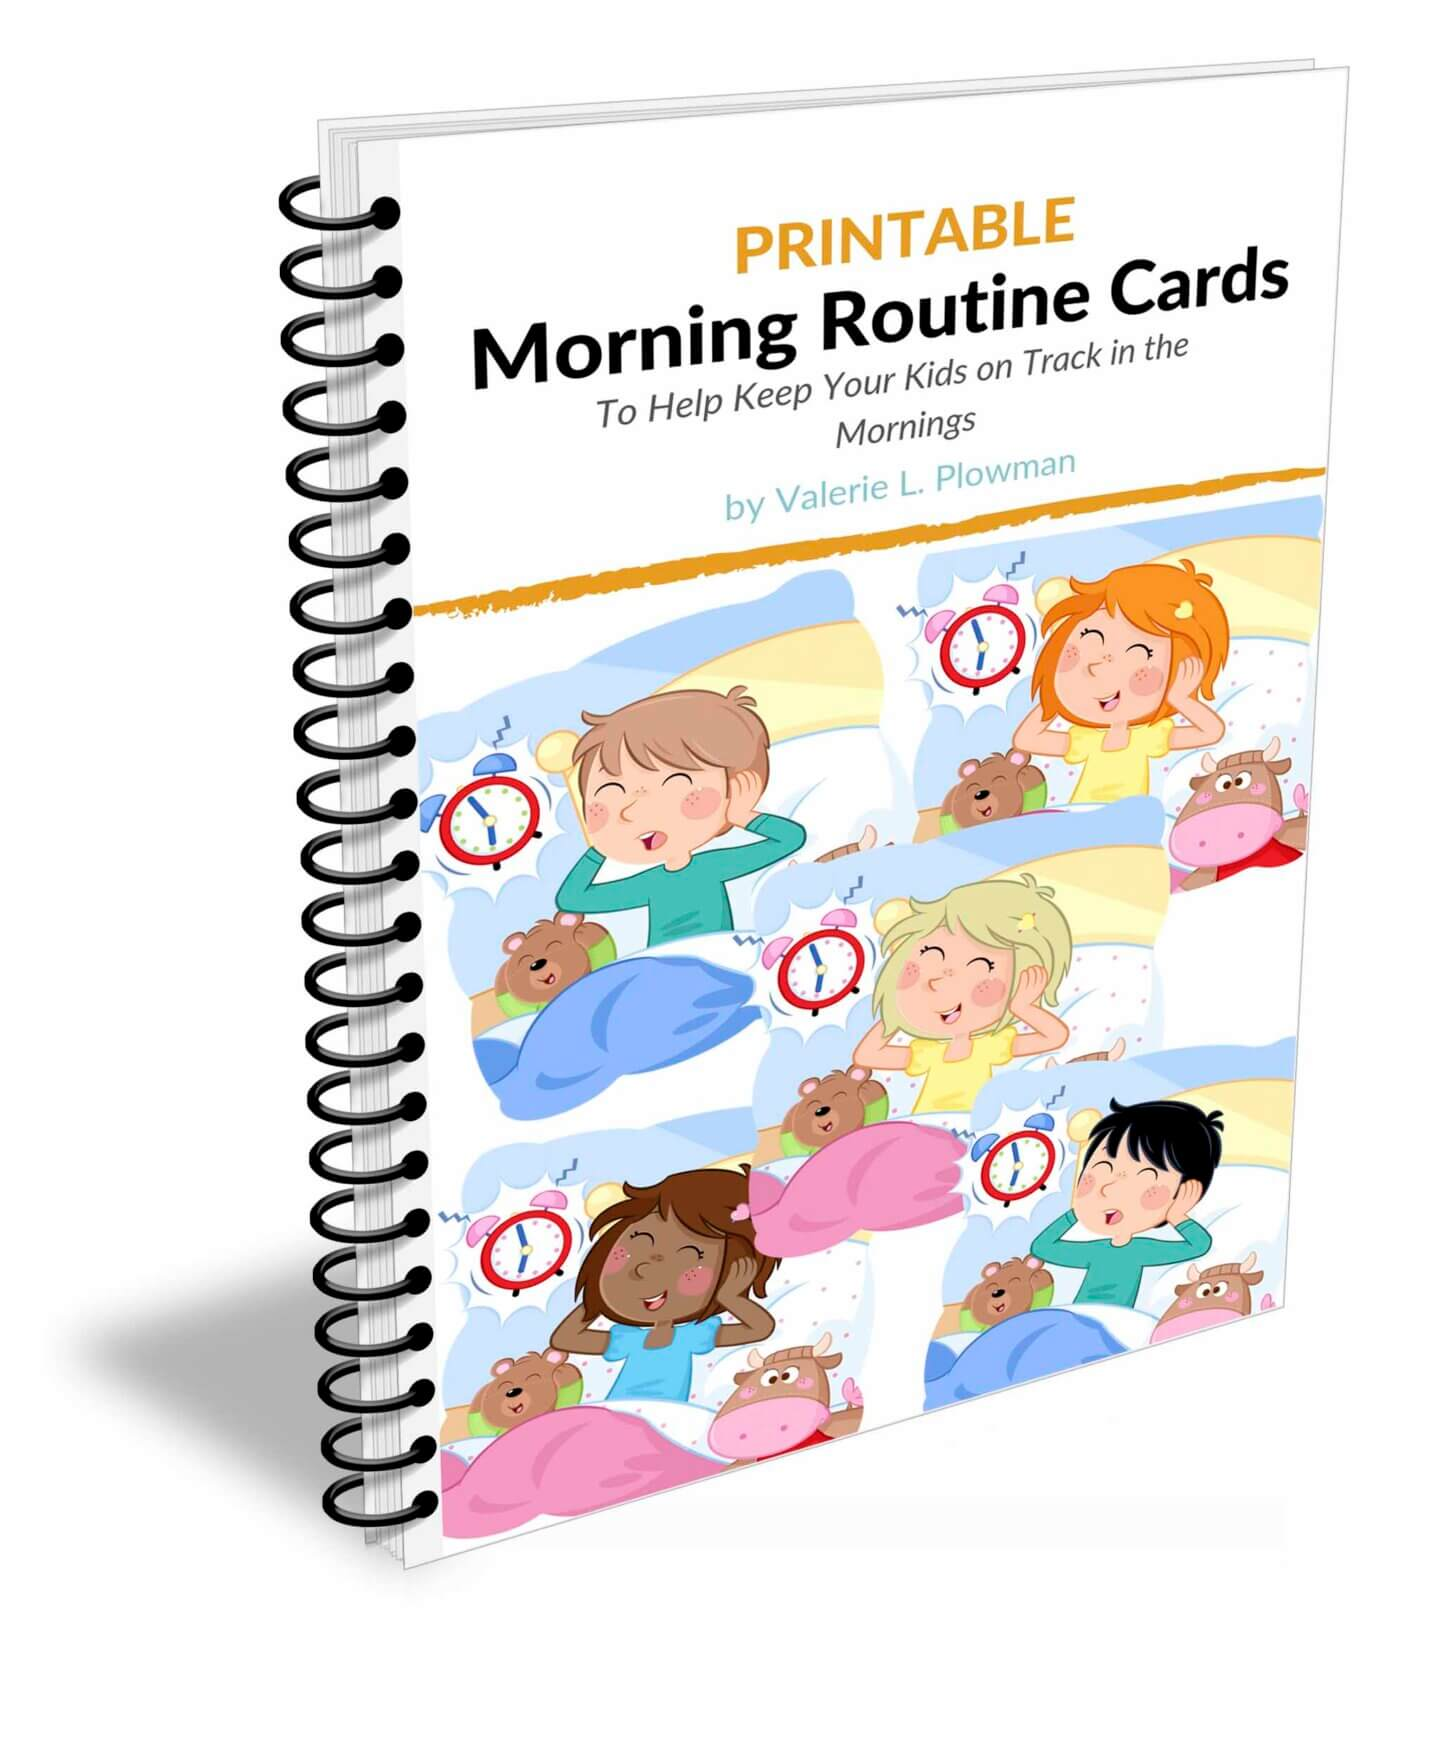 Printable Morning Routine Cards by Valerie Plowman